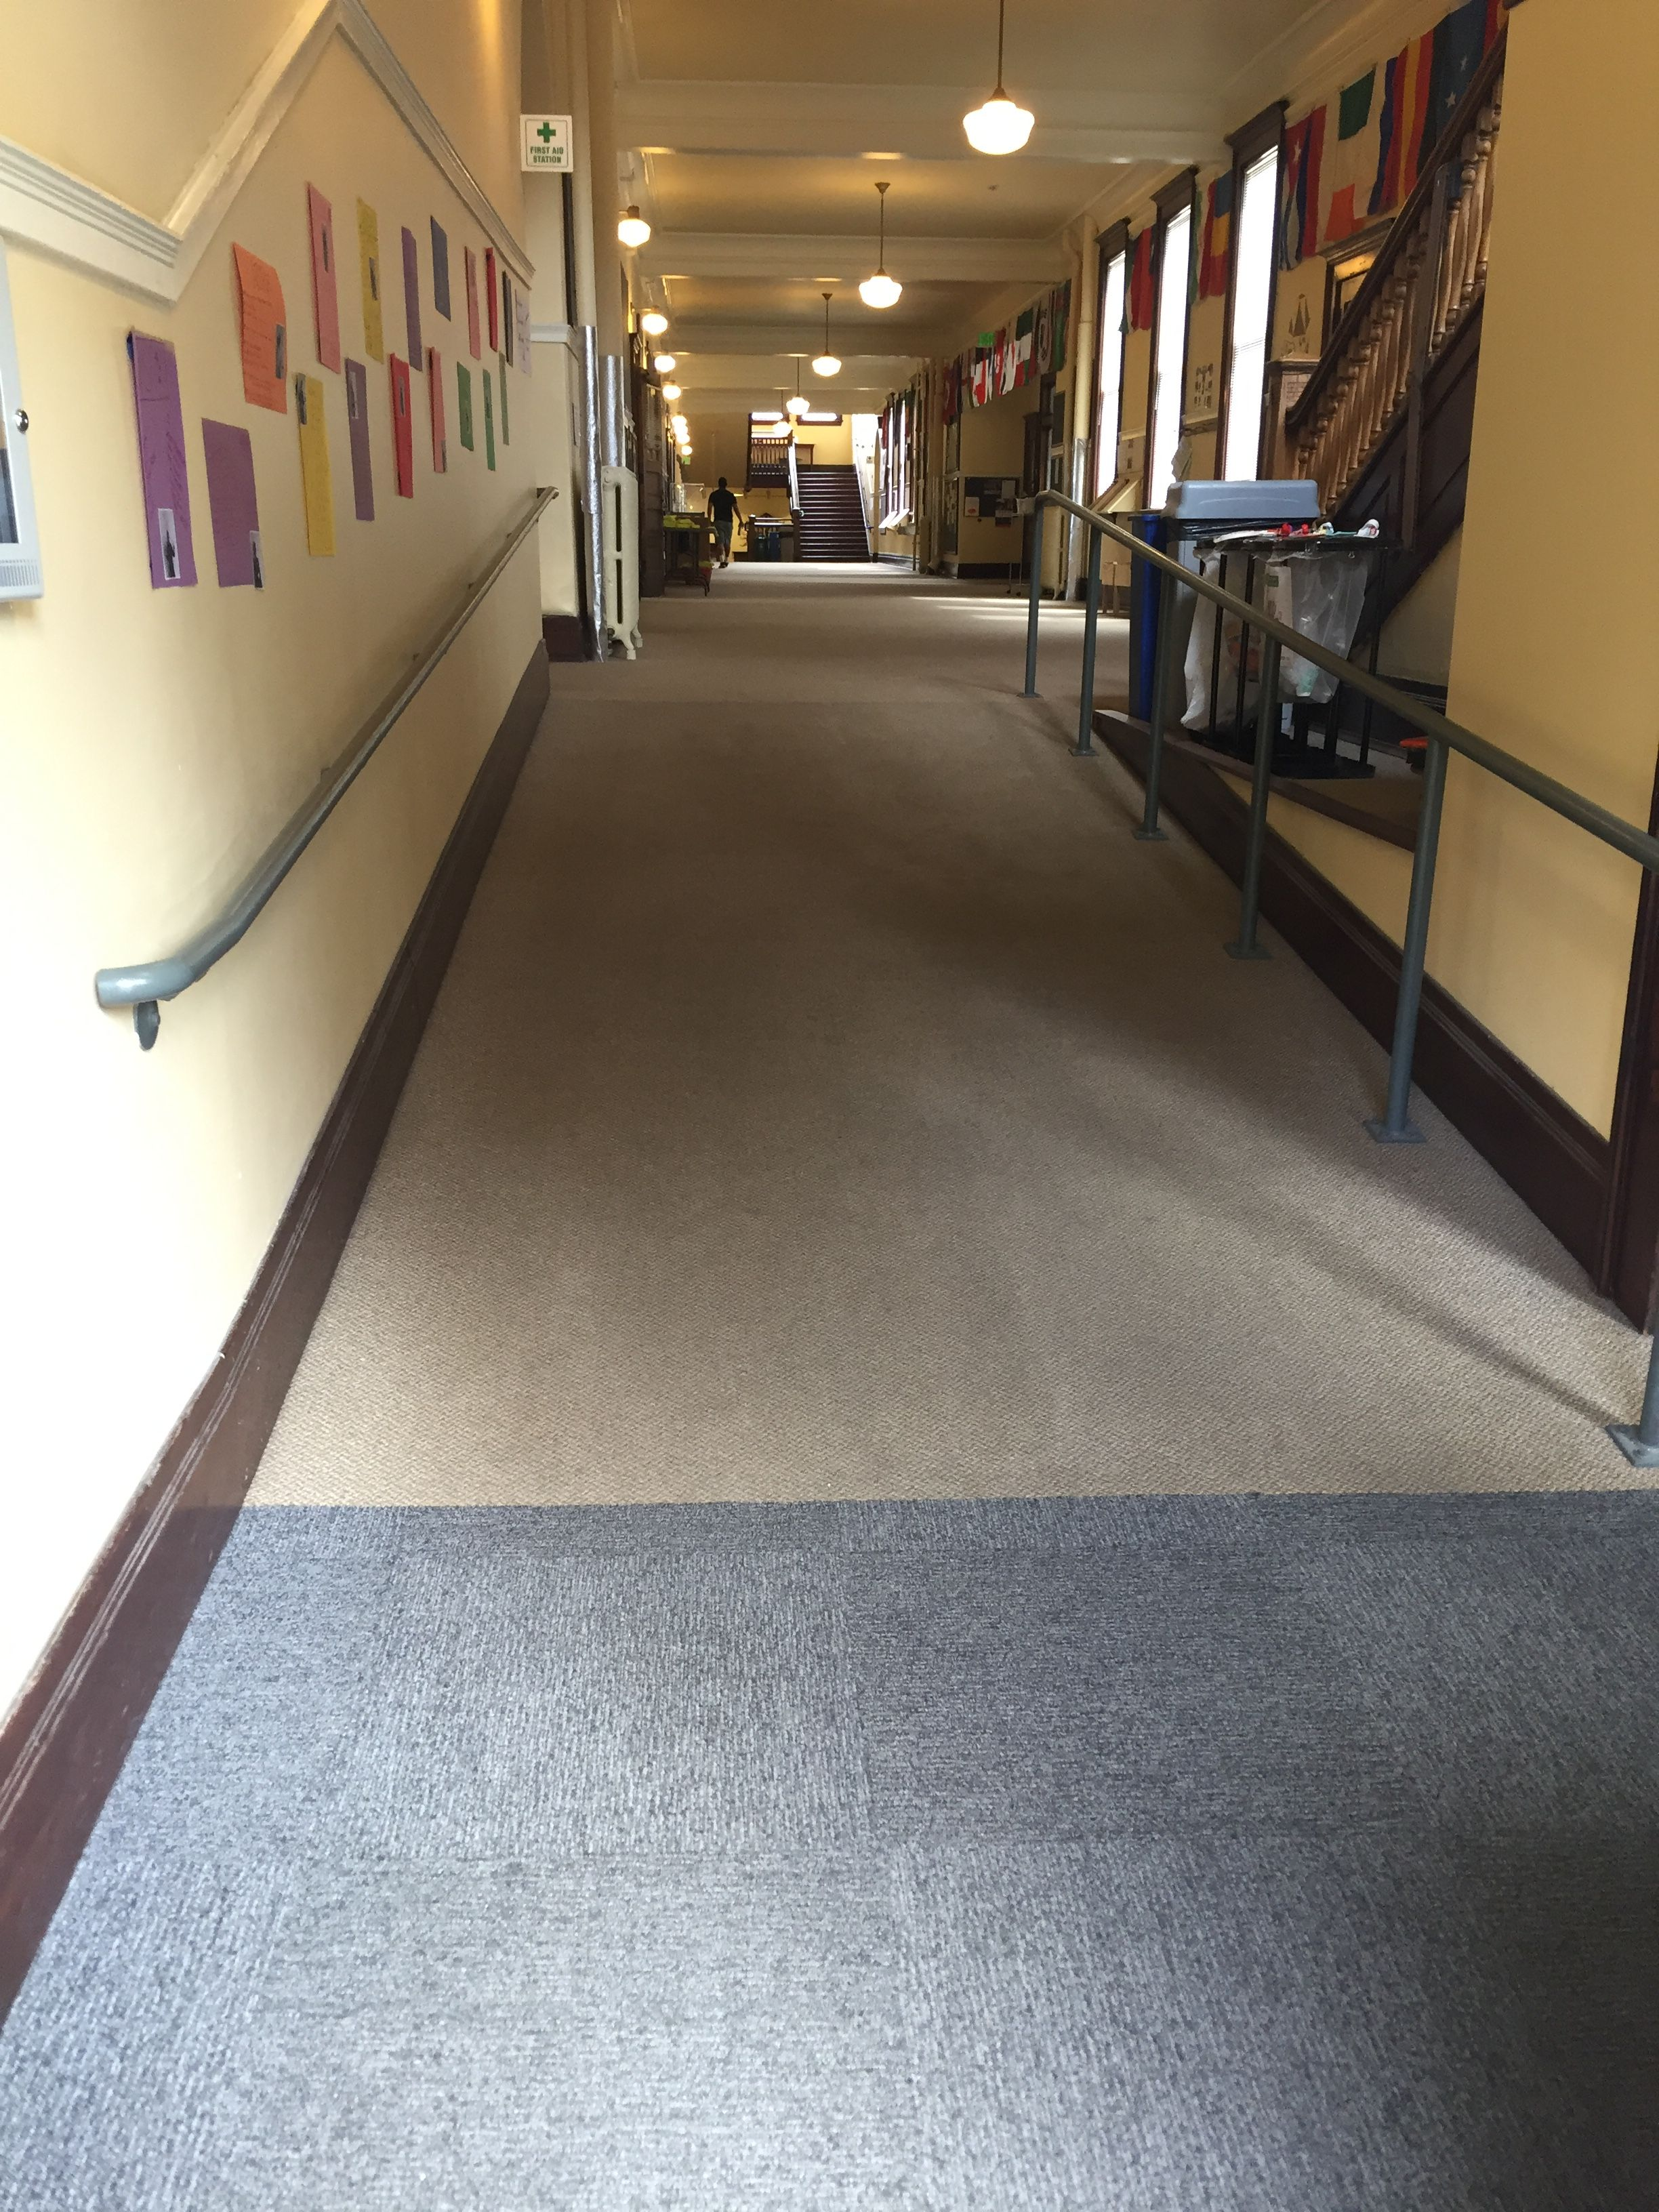 Northwest School In Seattle Installed With Bolyu Access Walk Off Carpet Tile In Entry Areas Carpet Tiles Northwest School Carpet